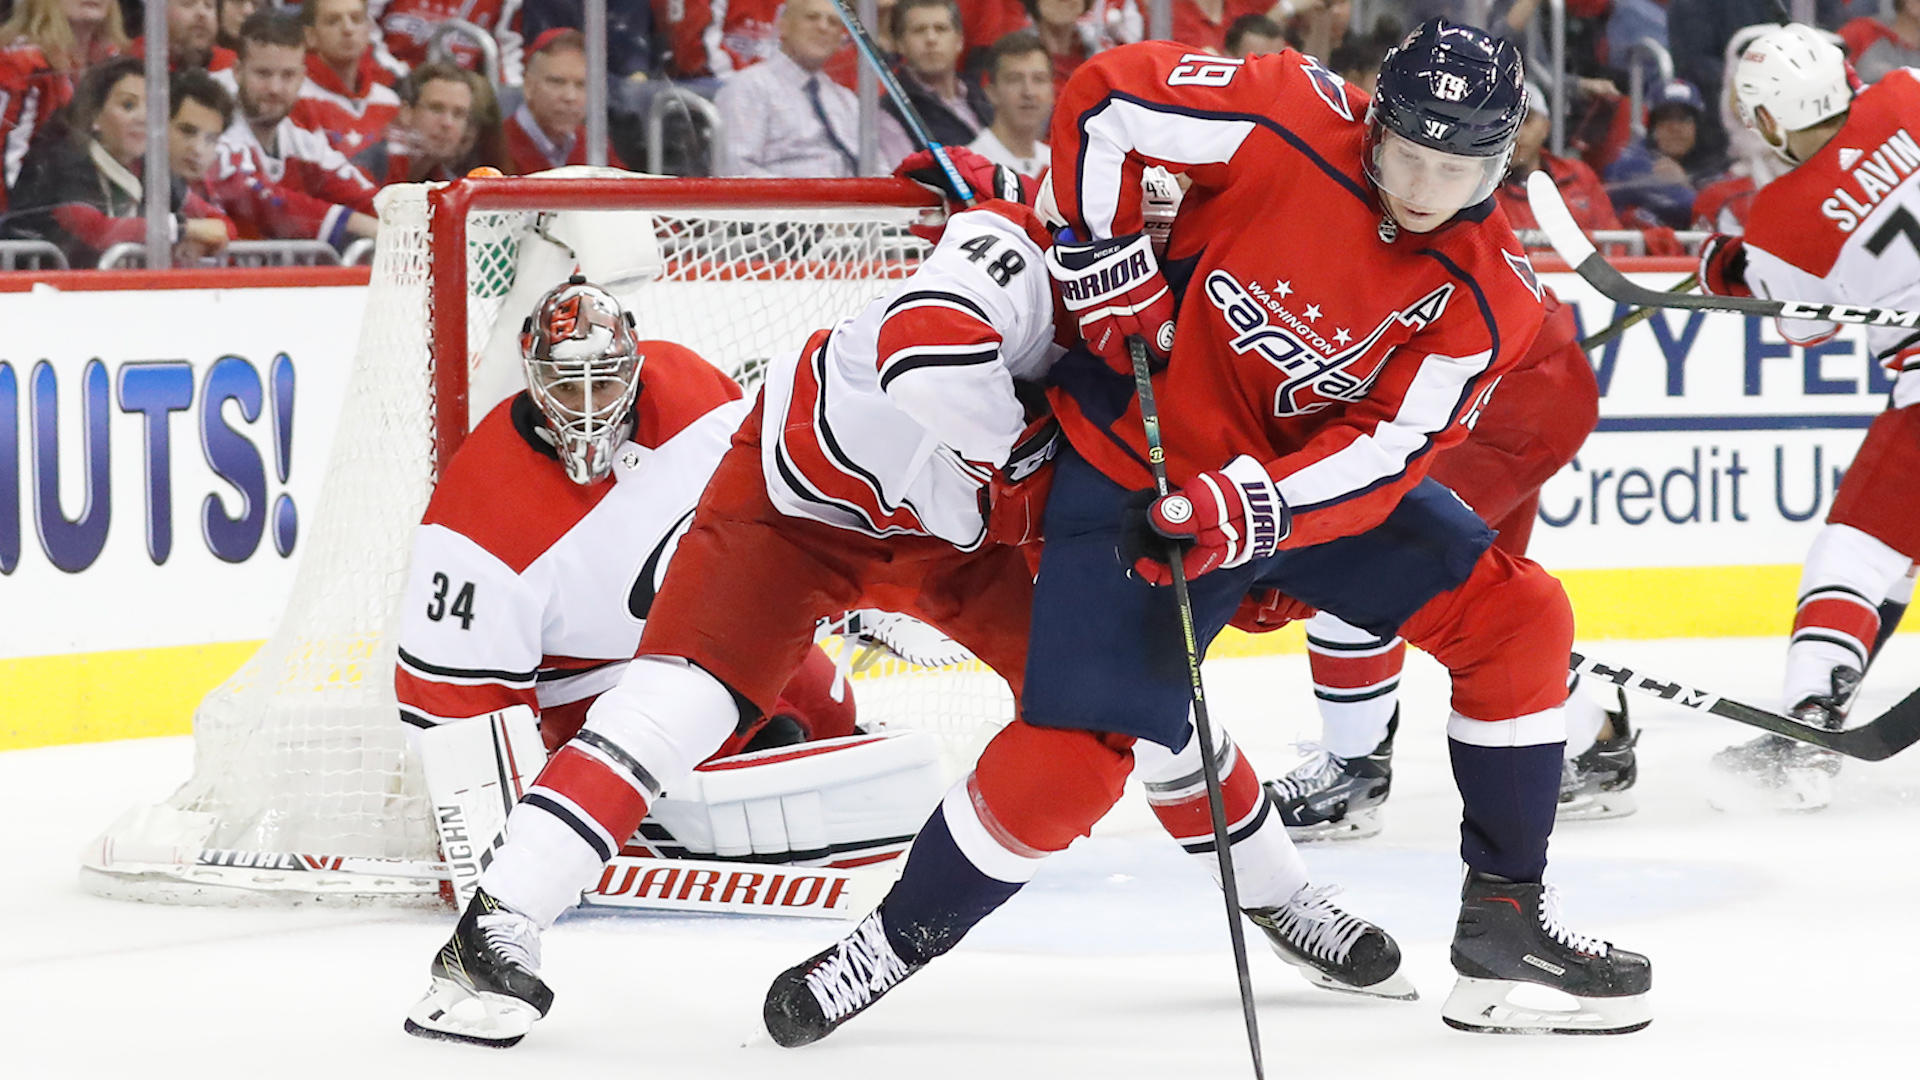 Stanley Cup Playoffs 2019: Capitals vs. Hurricanes Game 7 live updates, TV channel, analysis